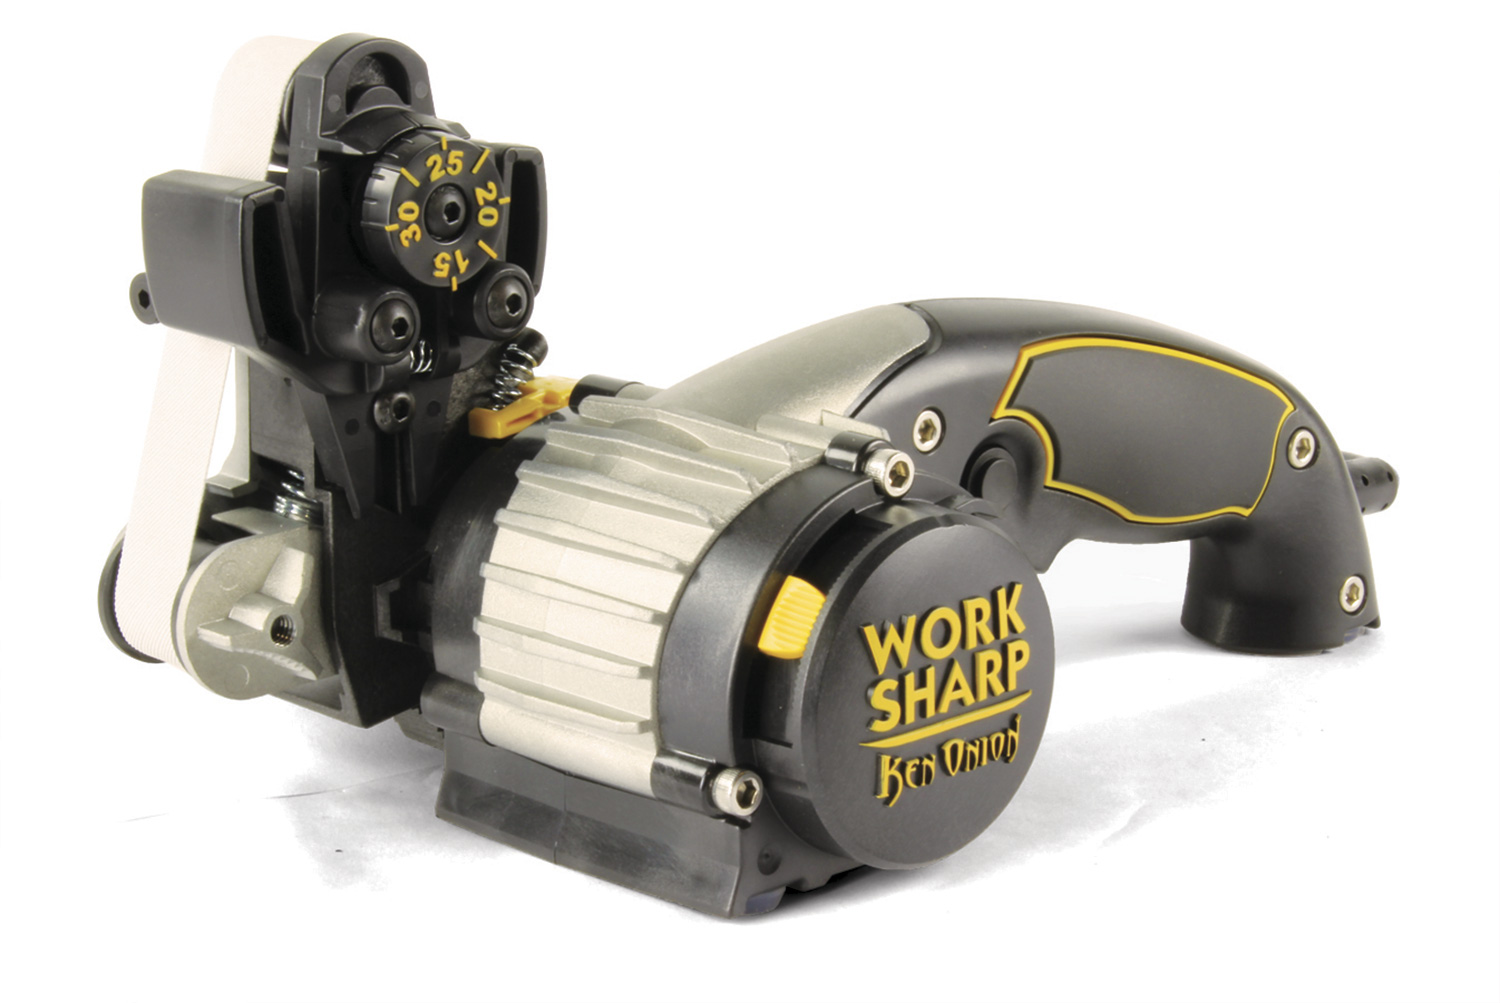 Knife And Tool Sharpener Ken Onion Edition By Worksharp